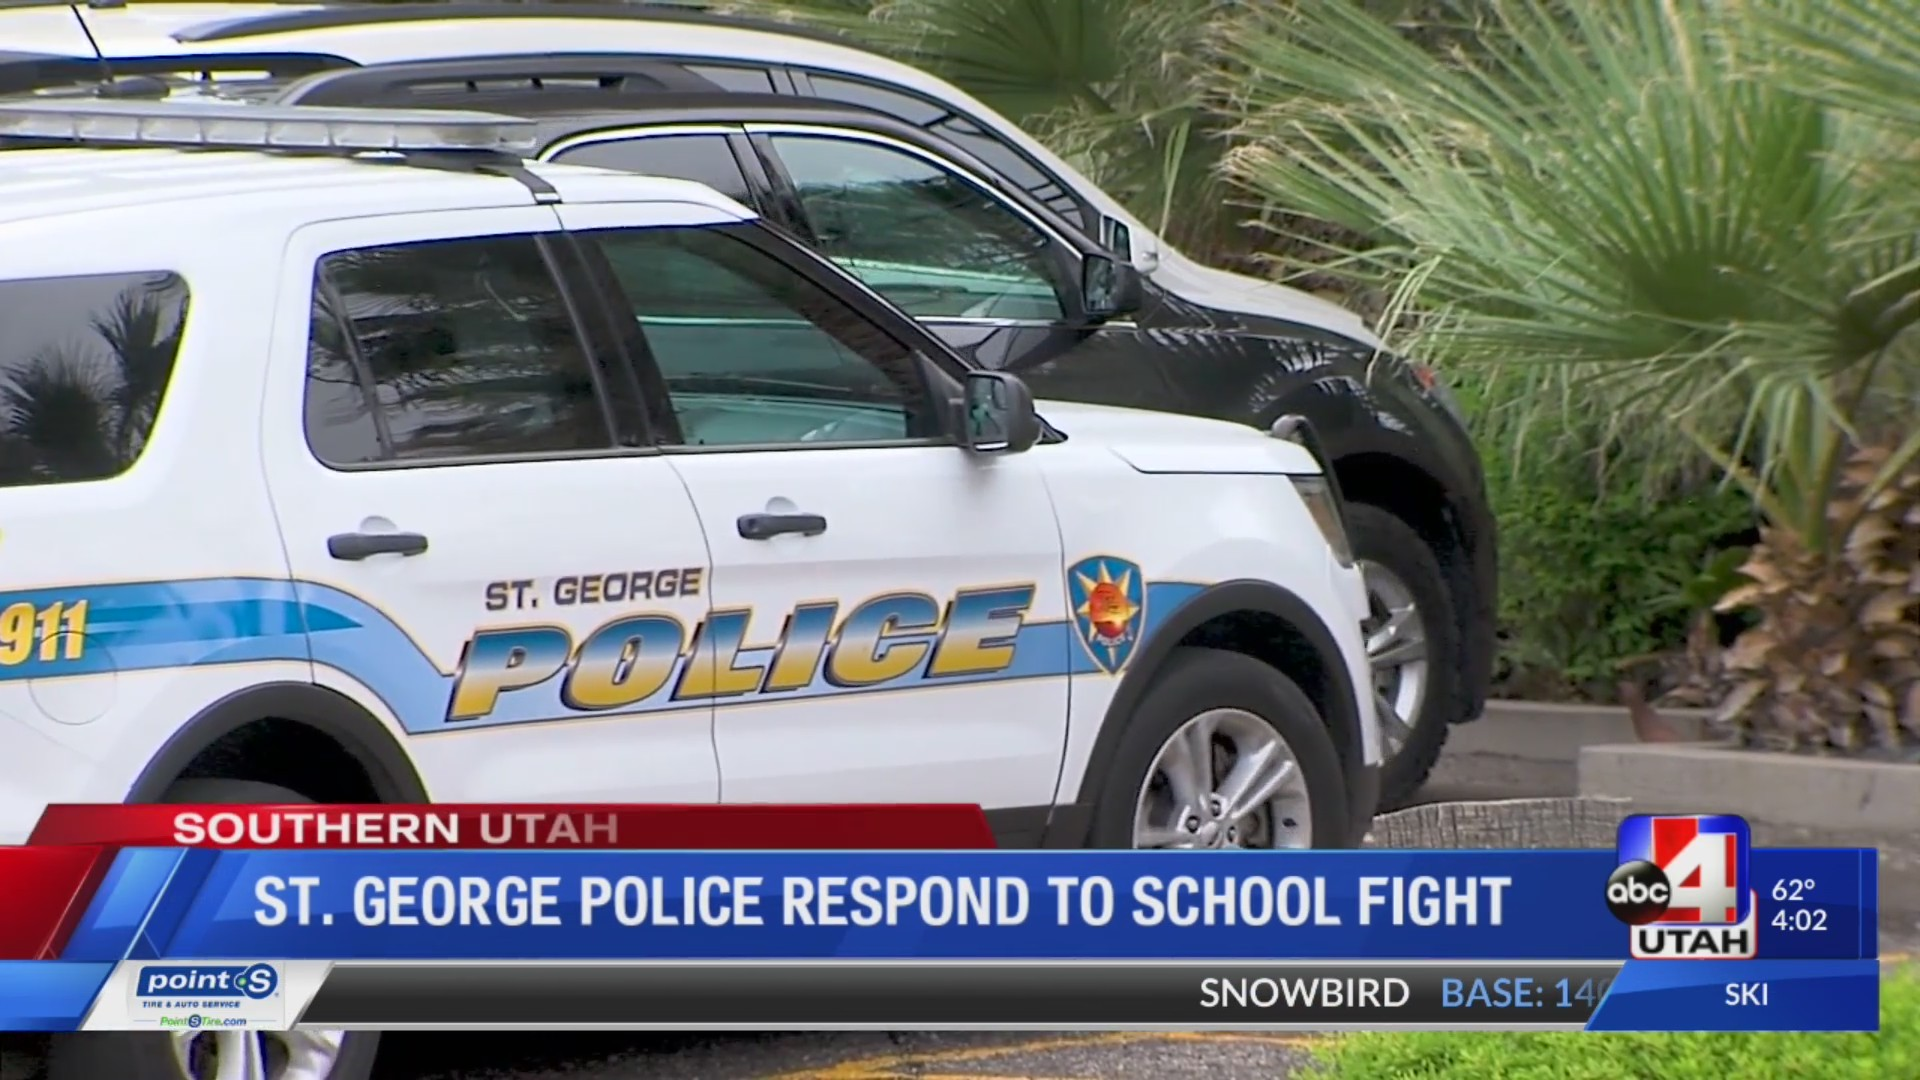 St. George police still investigating riot at adolescent treatment center that injured 25